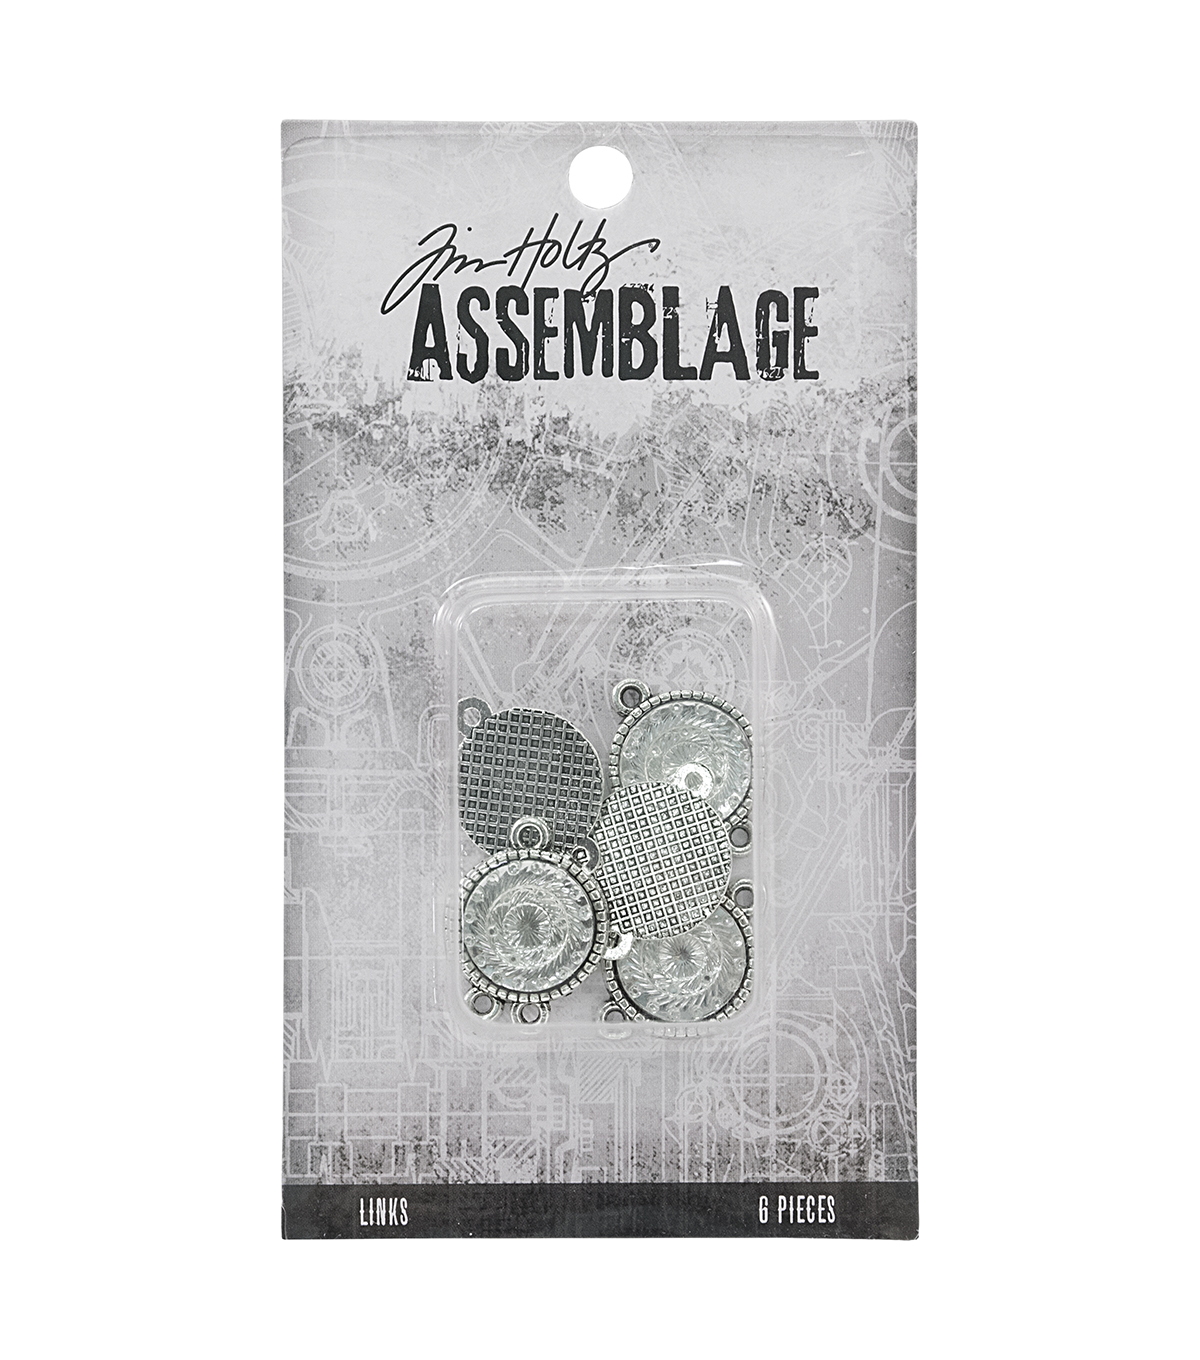 Tim Holtz Assemblage Links-Mirrored Medallions